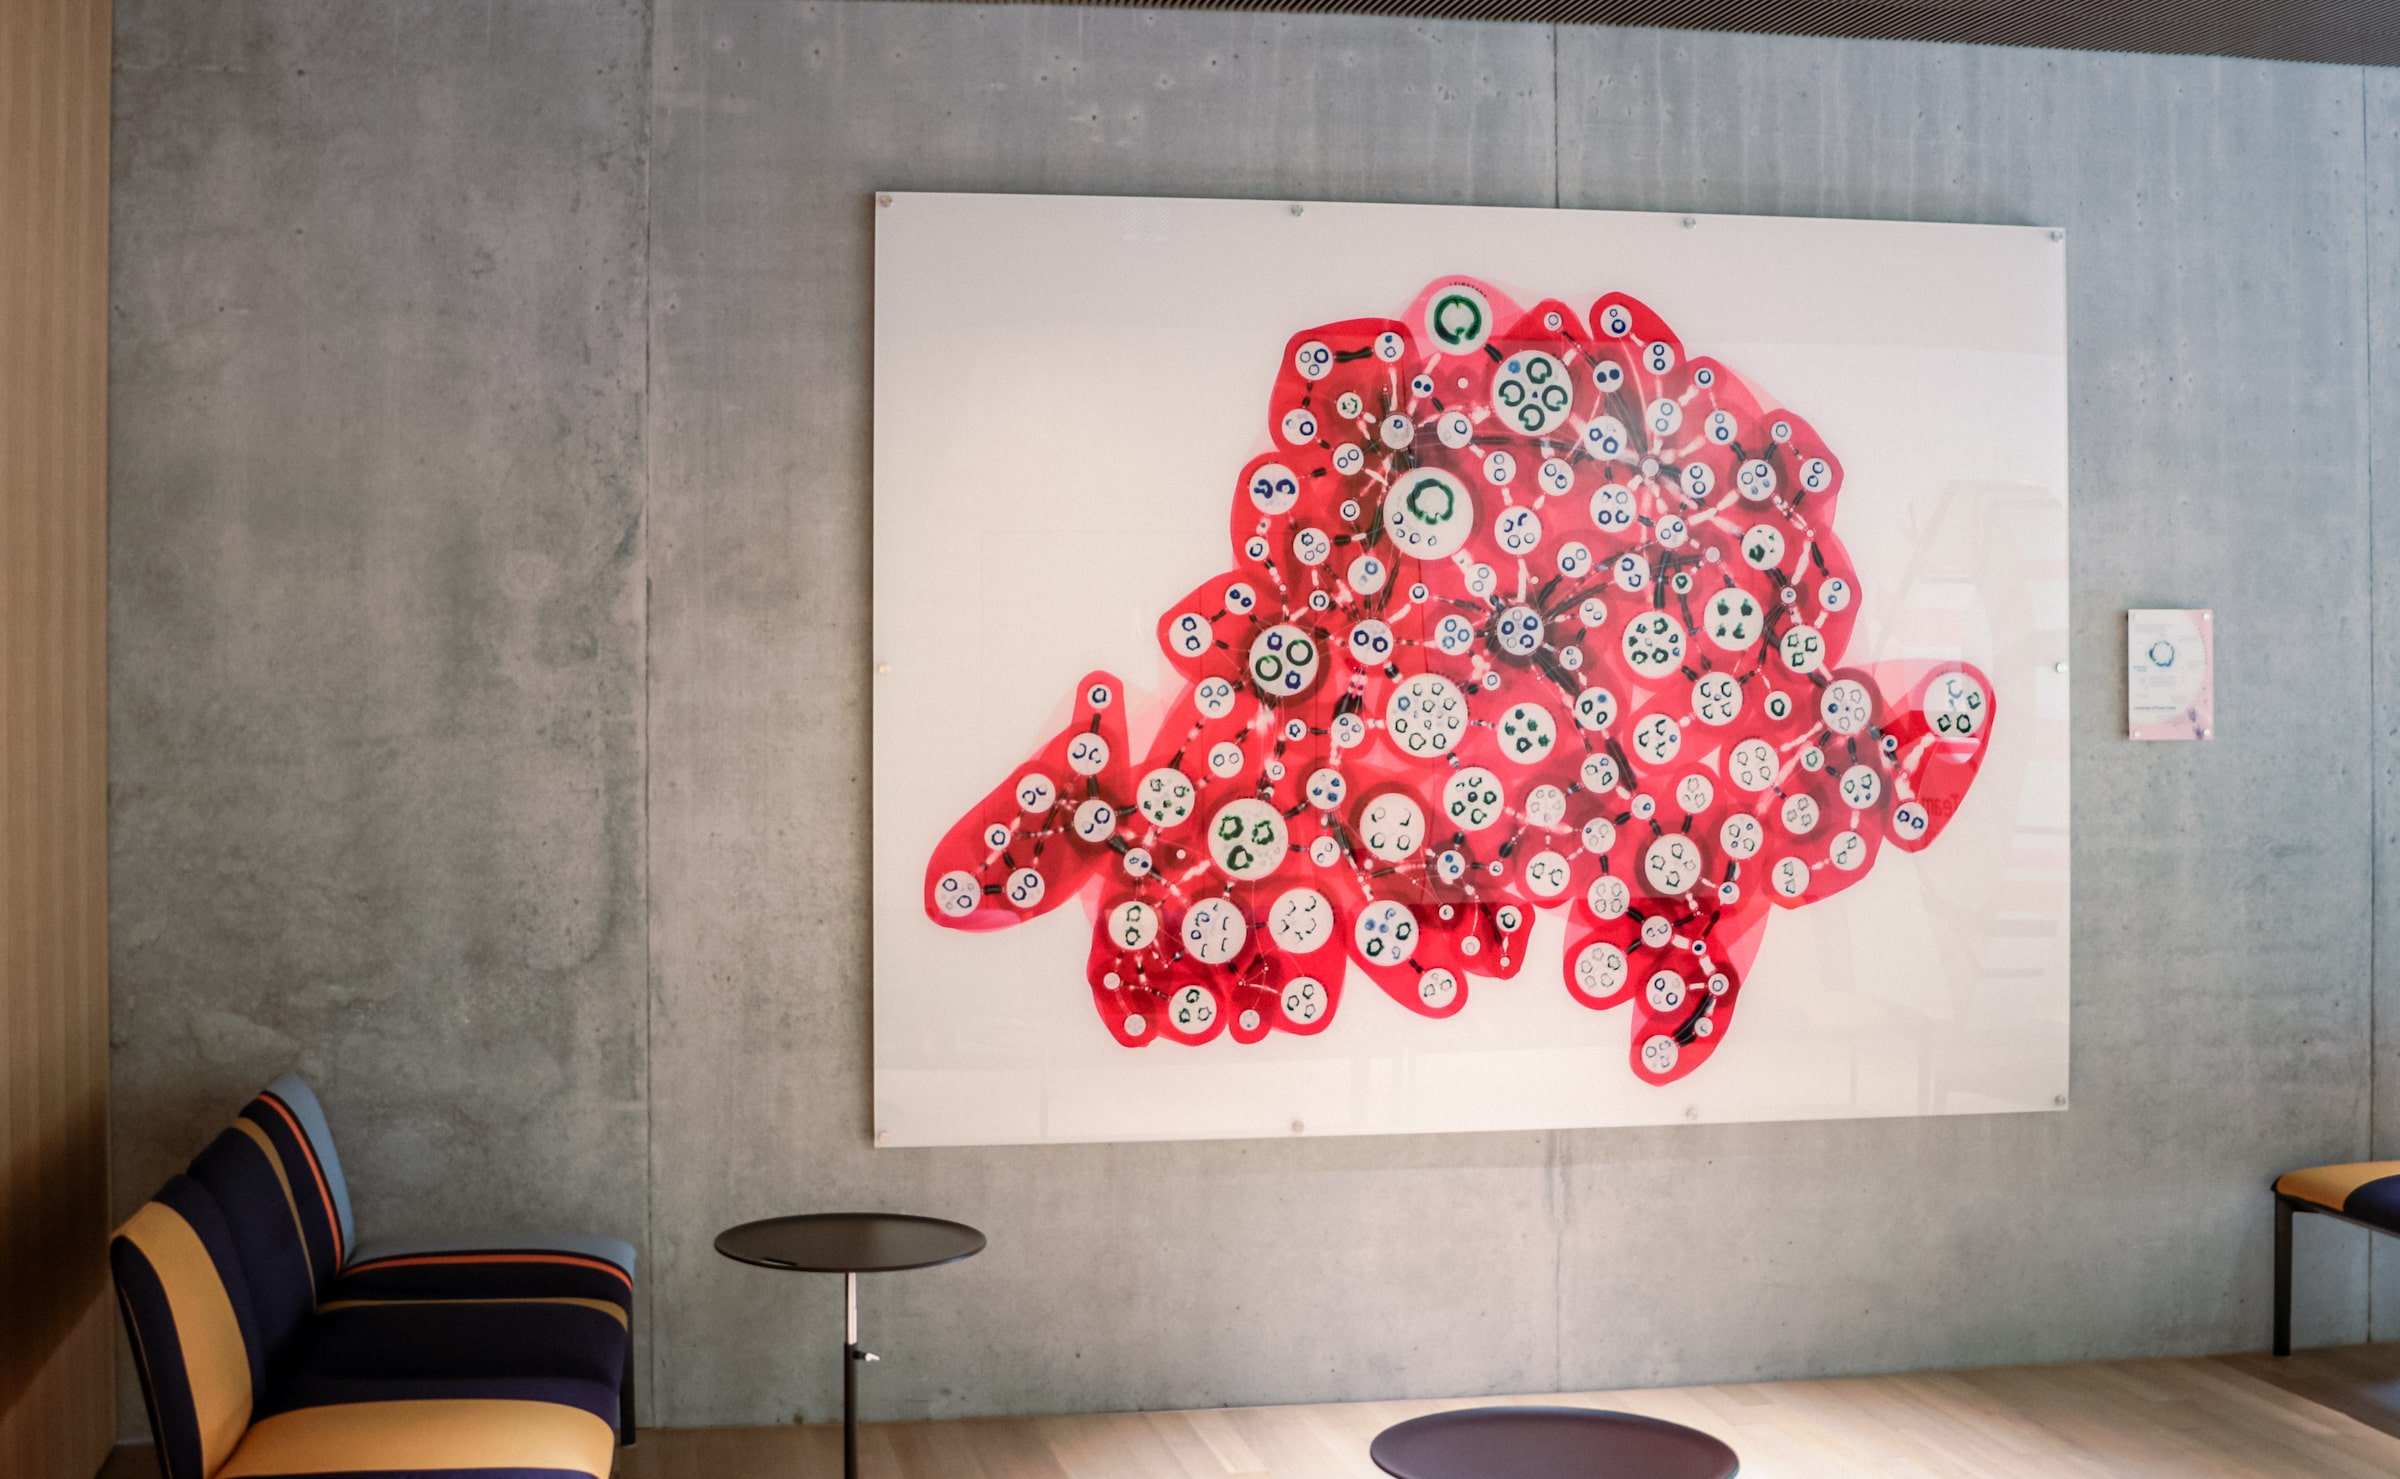 The actual printed piece in Swissgrid's lobby